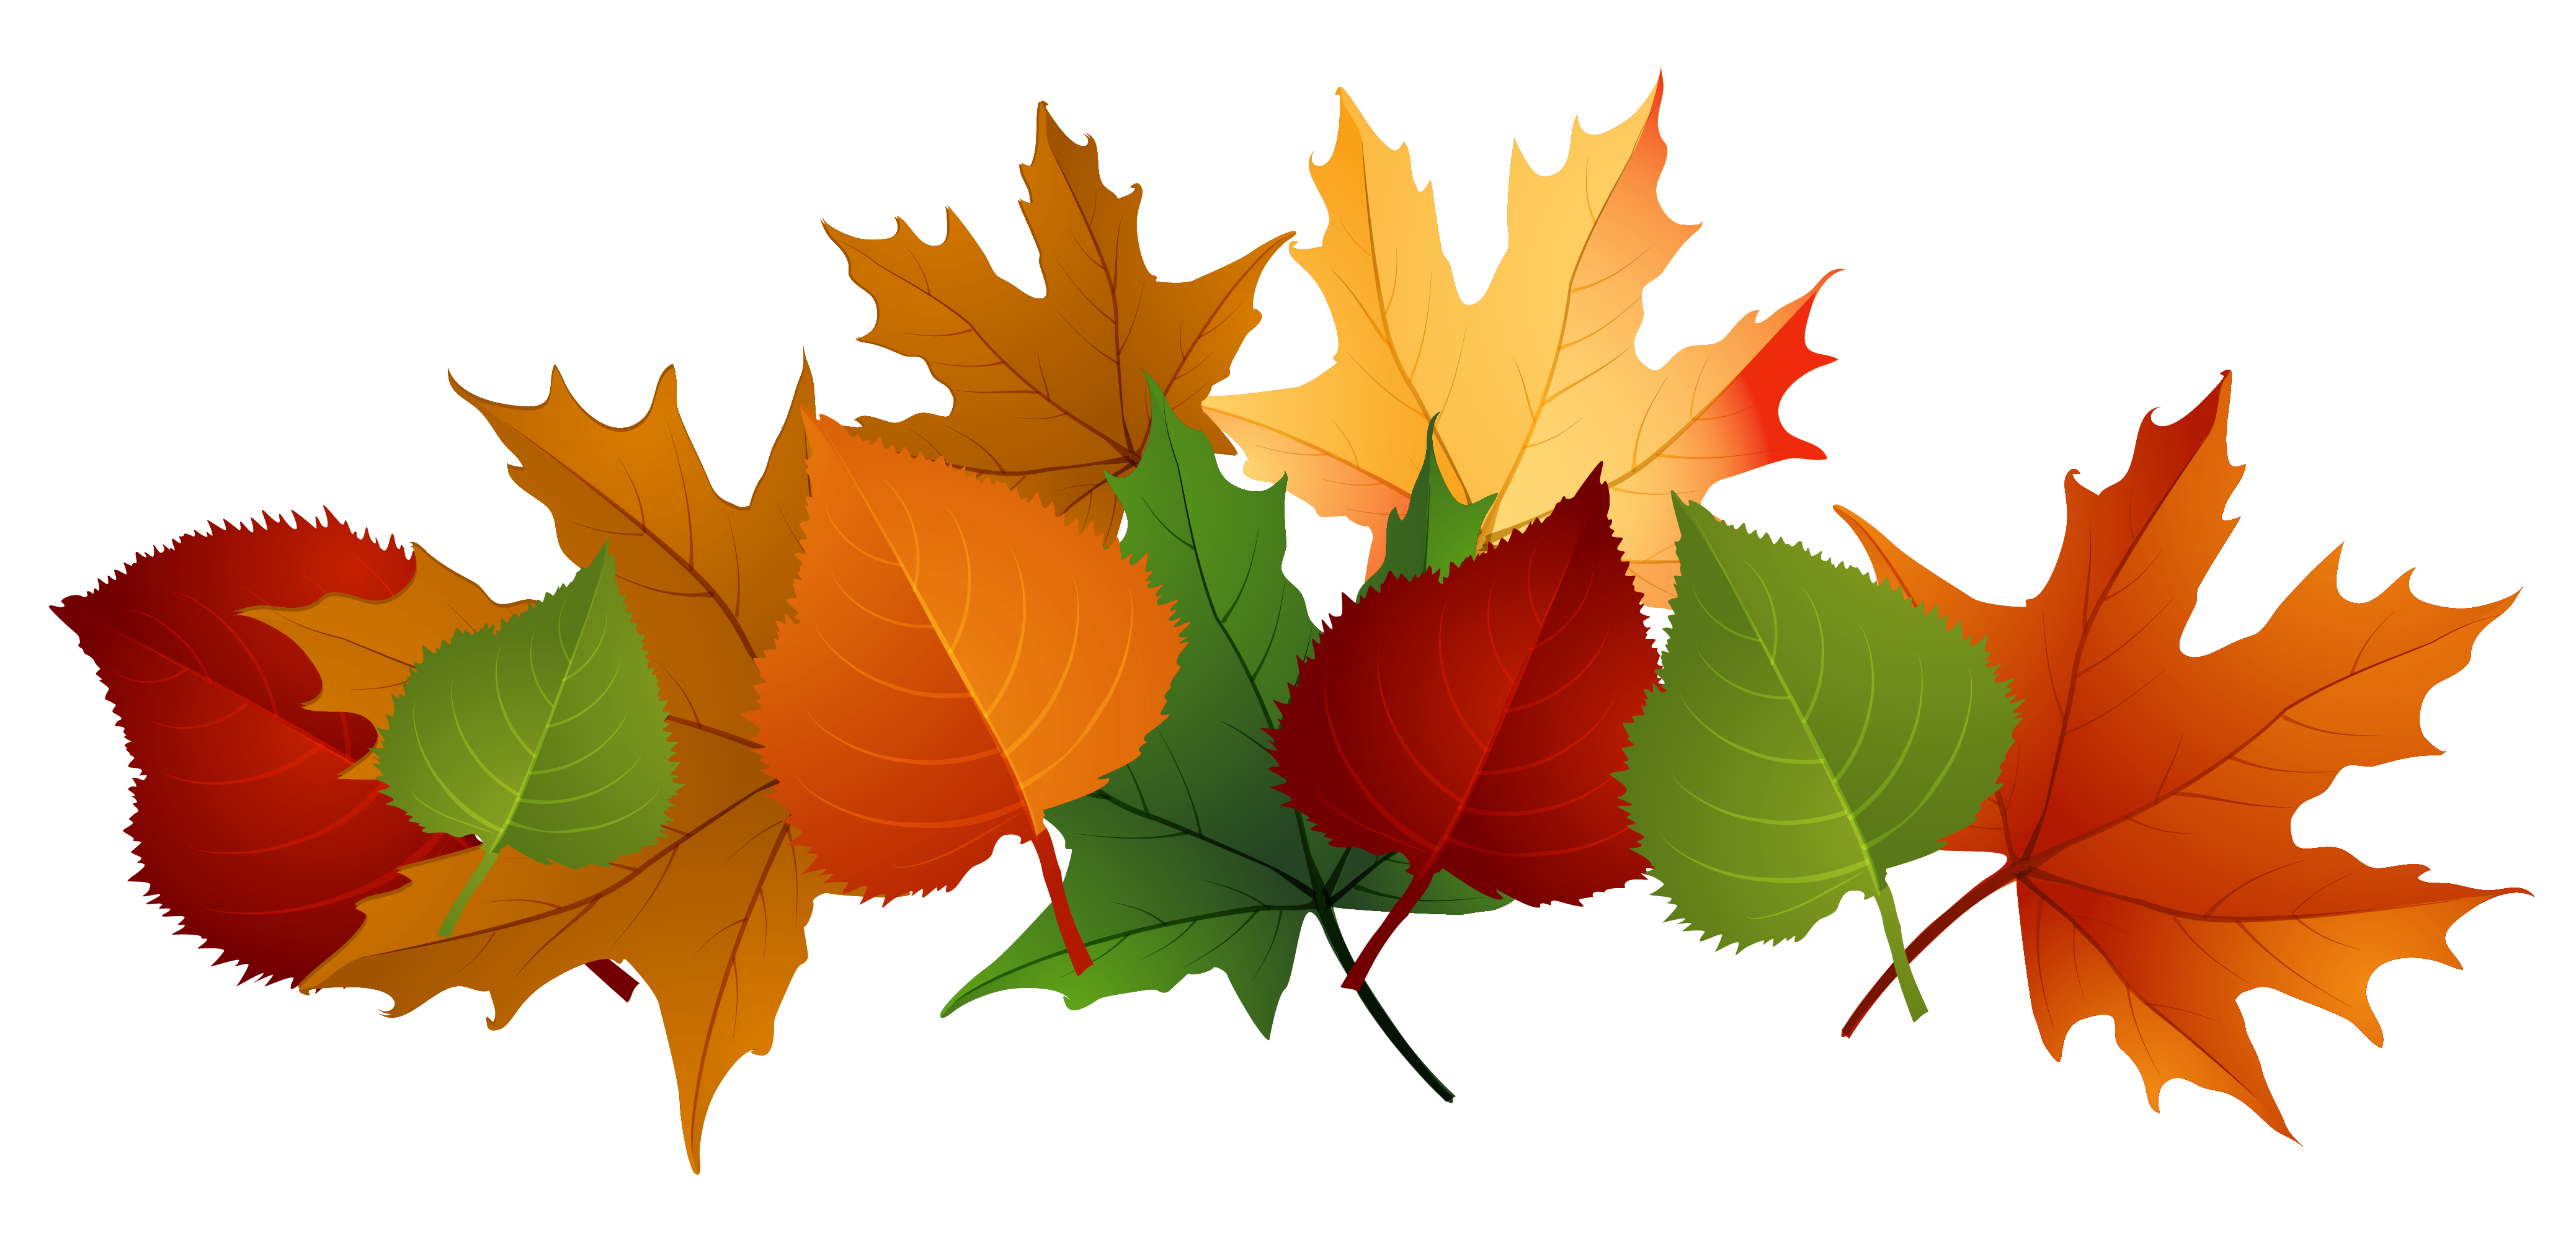 Clipart halloween leaves. Autumn pile clip art